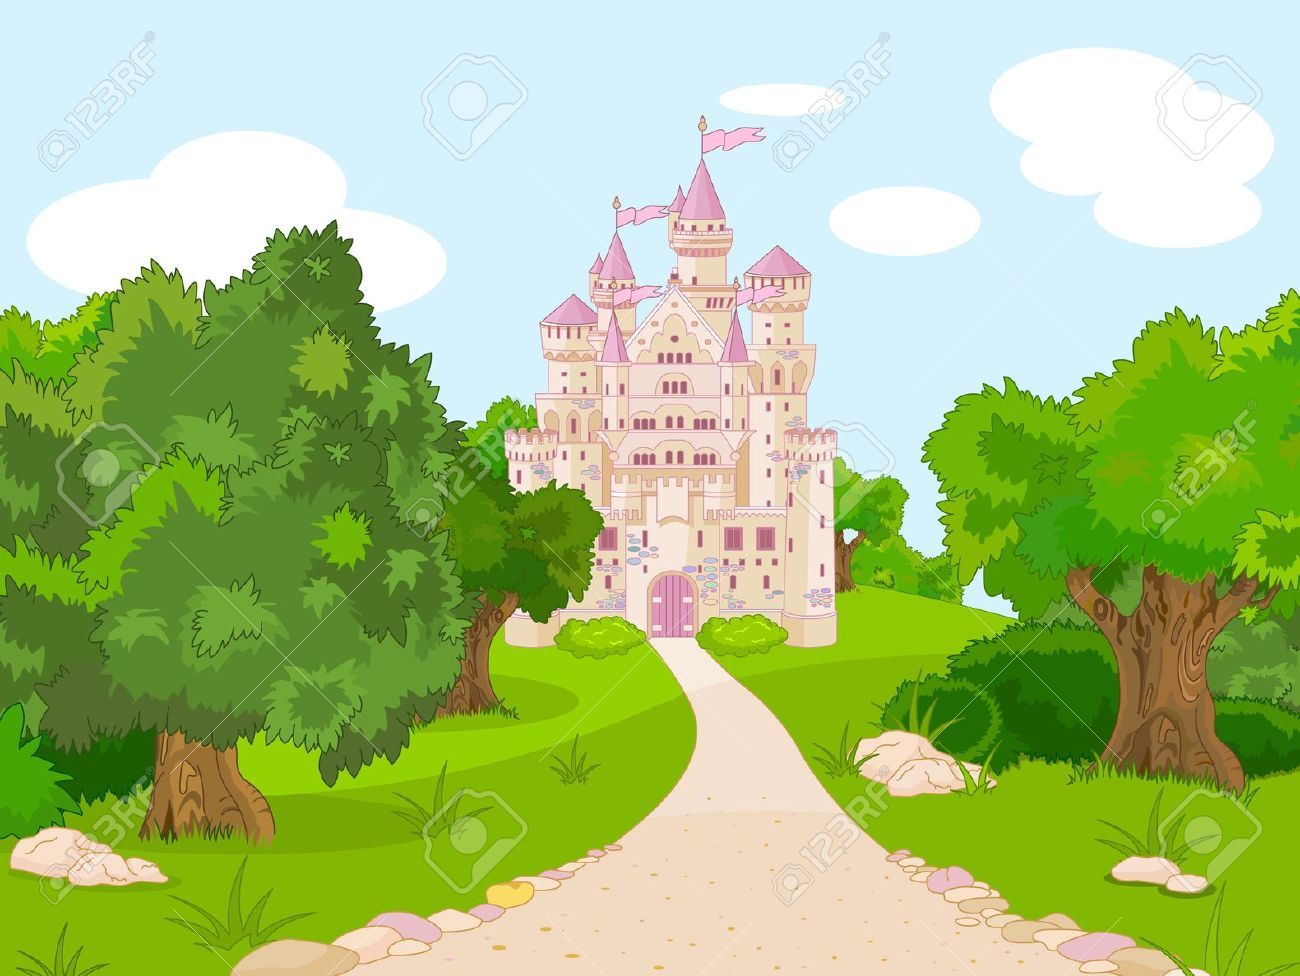 Stock vector illustration . Landscape clipart castle